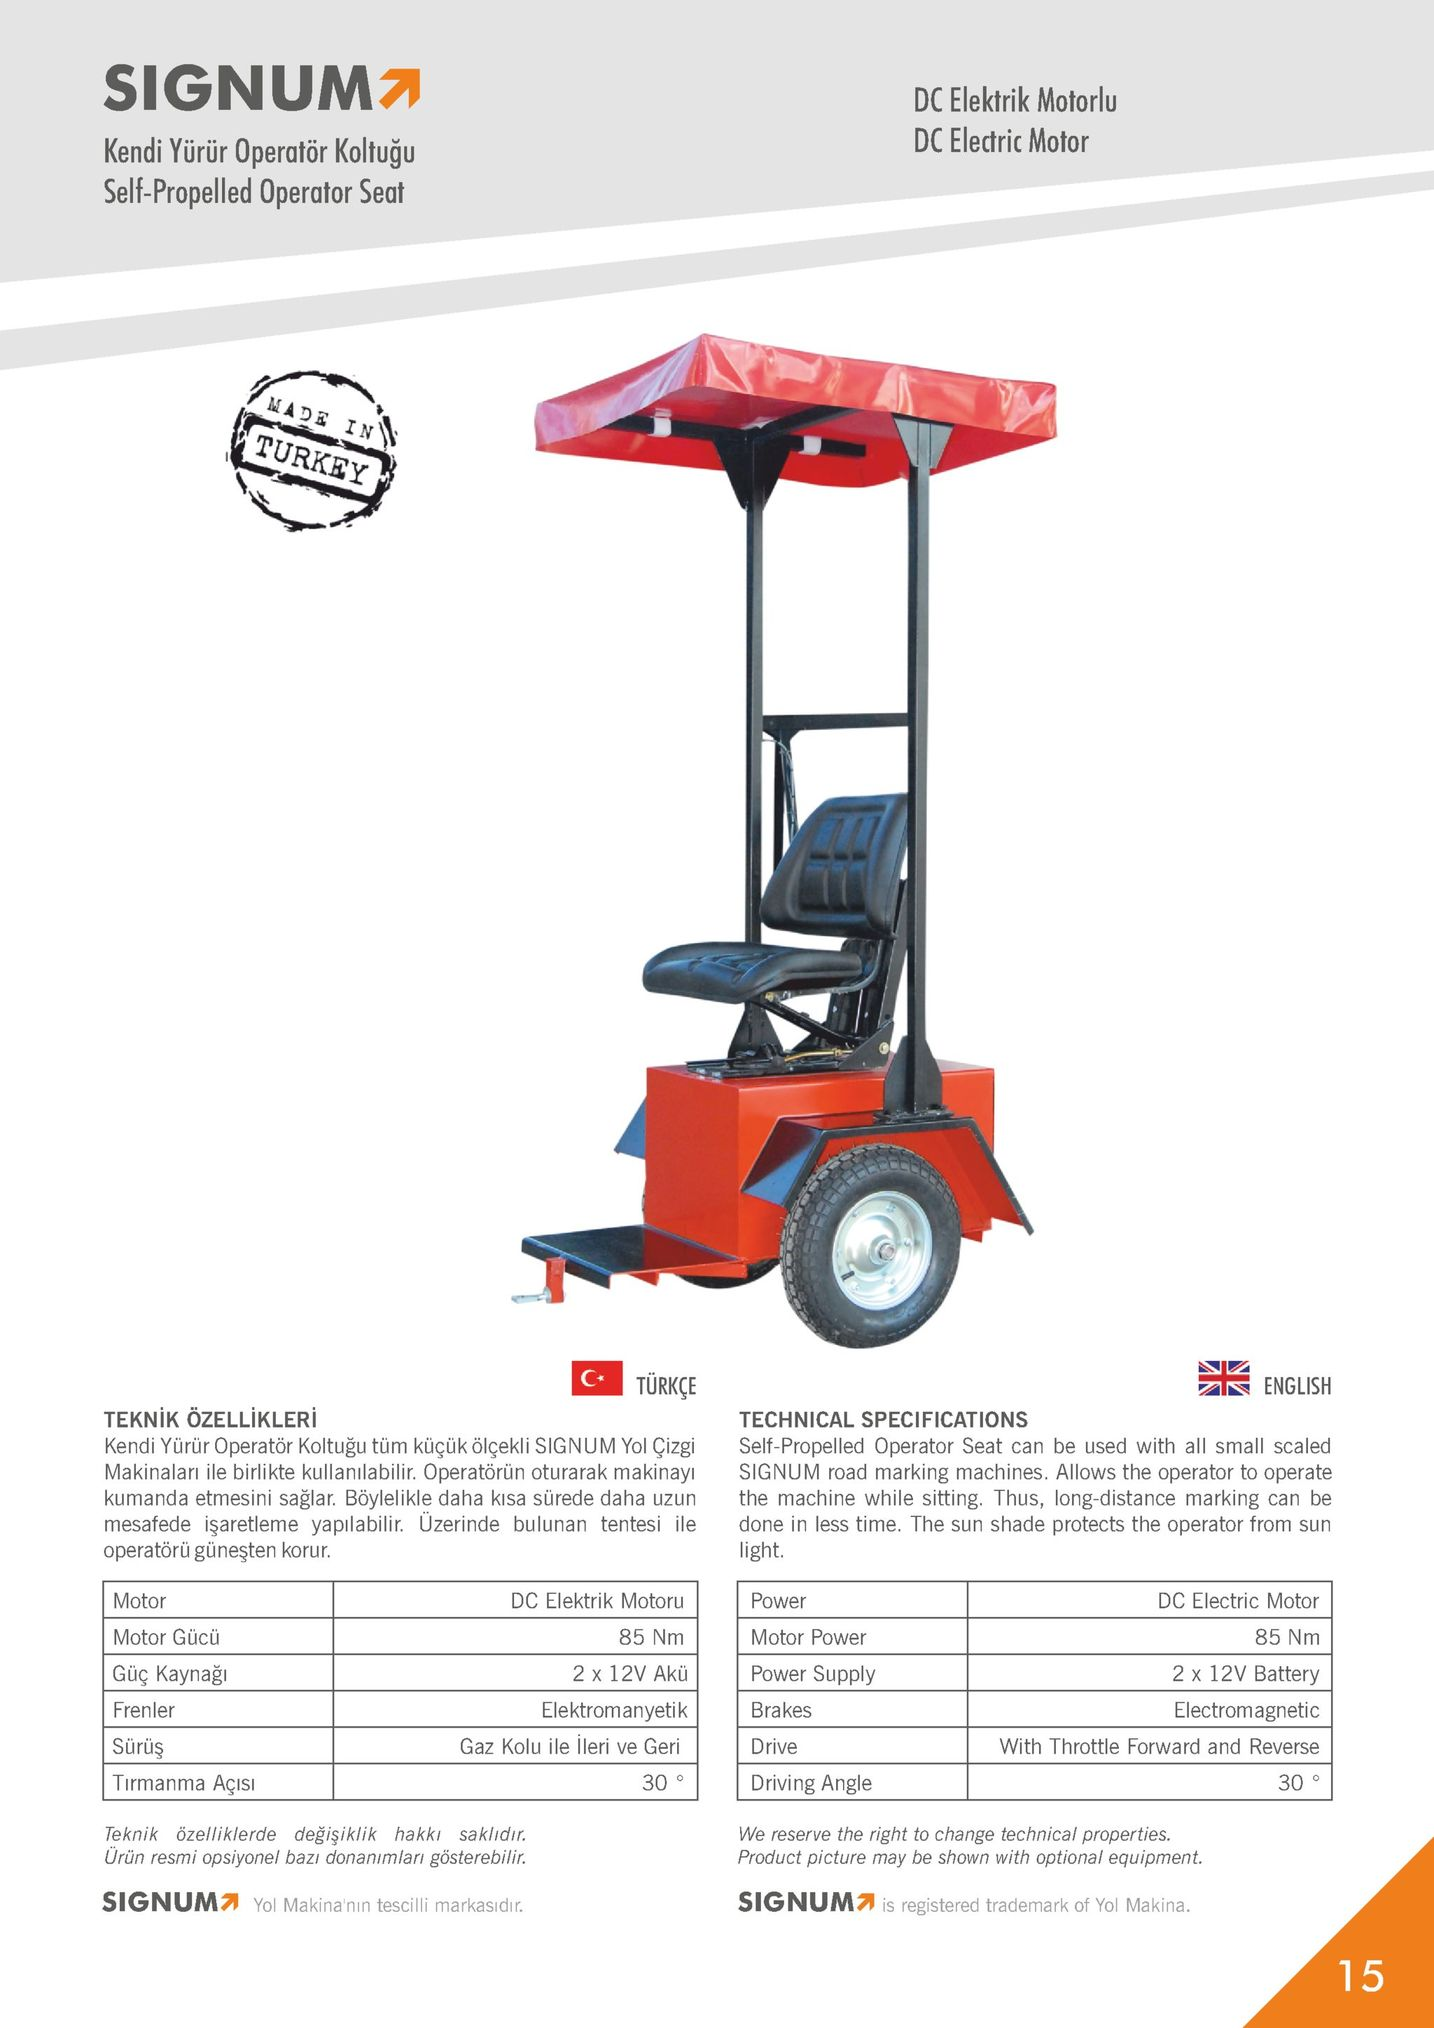 signum kendi yürür operatör koltuğu self-propelled operator seat dc elektrik motorlu dc electric motor made in turkey türkçe english teknik ozellikler kendi yürür operatör koltuğu tüm küçük ölçekli signum yol çizgi makinaları ile birlikte kullanılabilir. operatörün oturarak makinayi kumanda etmesini sağlar. böylelikle daha kisa sürede daha uzun mesafede işaretleme yapilabilir. üzerinde bulunan tentesi ile operatörü güneşten korur technical specifications self-propelled operator seat can be used with all small scaled signum road marking machines. allows the operator to operate the machine while sitting. thus, long-distance marking can be done in less time. the sun shade protects the operator from sun light. motor motor gücü güç kaynağı frenler sürüş tirmanma açısı teknik özelliklerde değişiklik hakki saklıdir dc elektrik motoru 85 nm 2 x 12v akü elektromanyetik gaz kolu ile lleri ve geri power motor power power supply brakes drive driving angle dc electric motor 85 nm 2 x 12v battery electromagnetic with throttle forward and reverse 30 0 we reserve the right to change technical properties. product picture may be shown with optional equipment. urün resmi opsiyonel bazı donanimlari gösterebilir. sign um yol makinanın tescilli markasar. signum7 is registered trademark of yol makina.